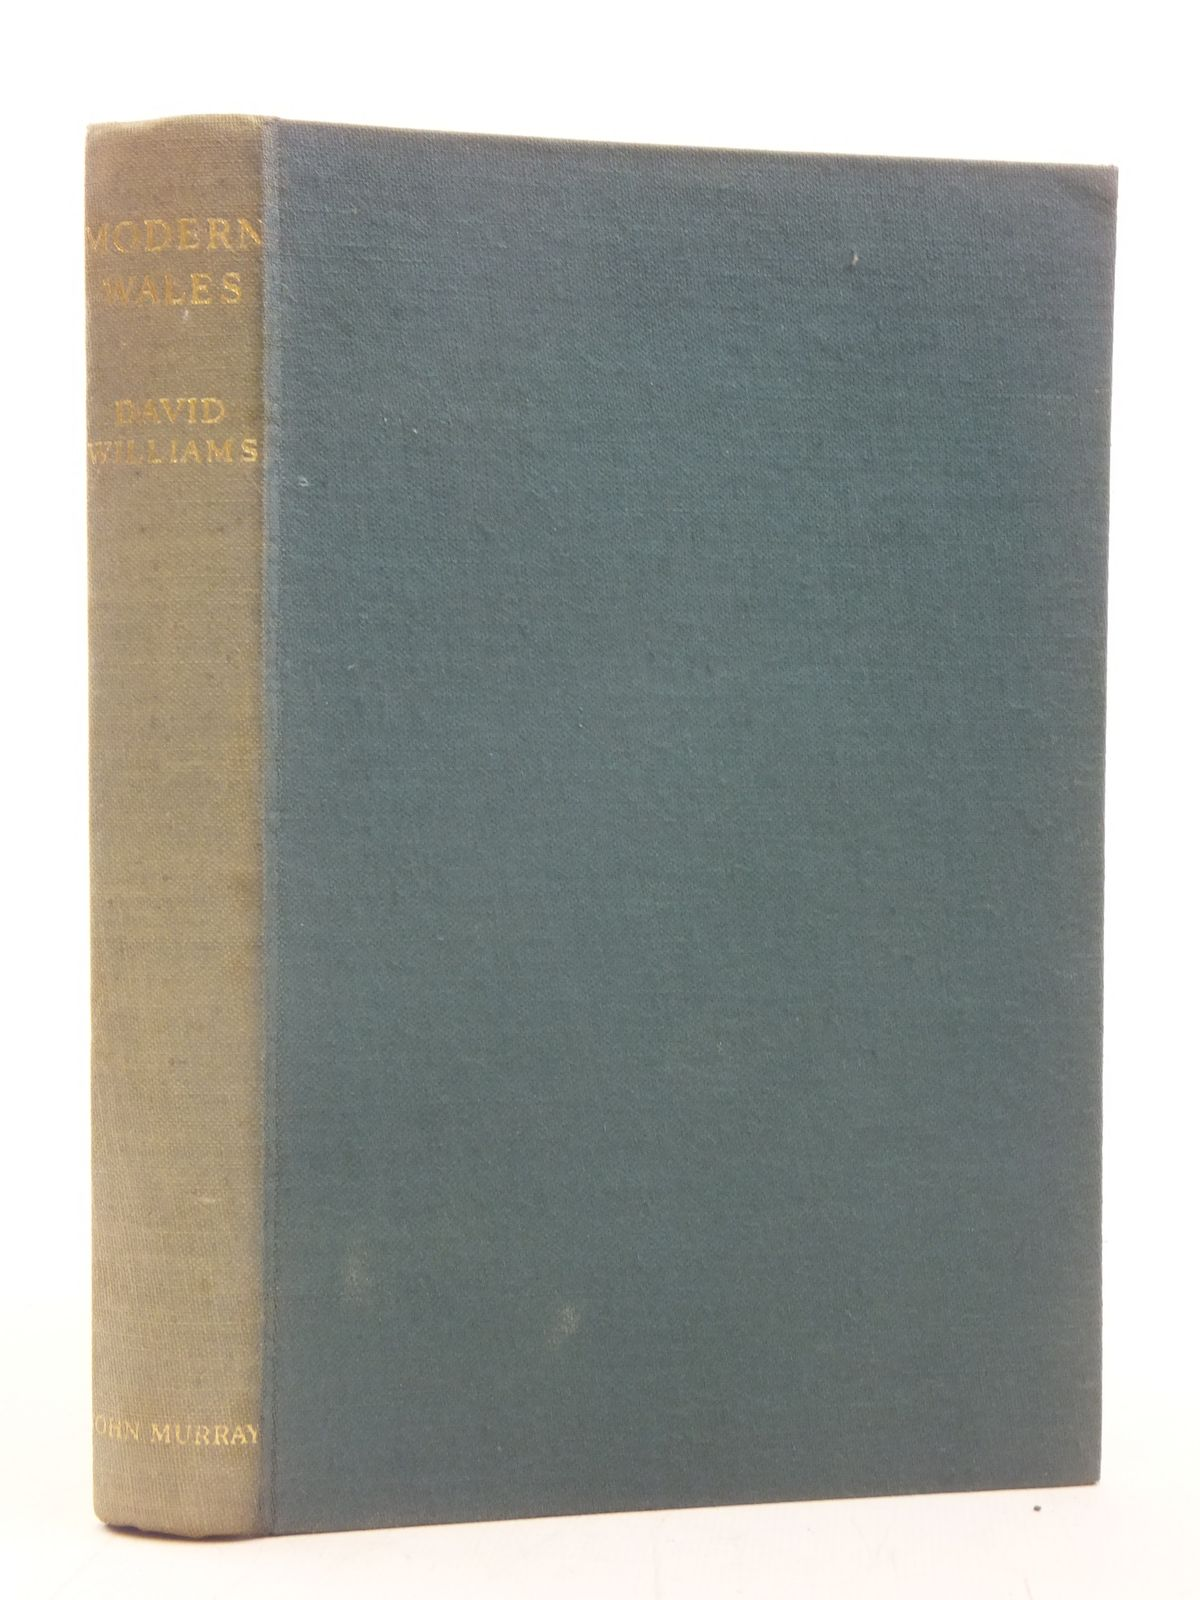 Photo of A HISTORY OF MODERN WALES written by Williams, David published by John Murray (STOCK CODE: 1606479)  for sale by Stella & Rose's Books